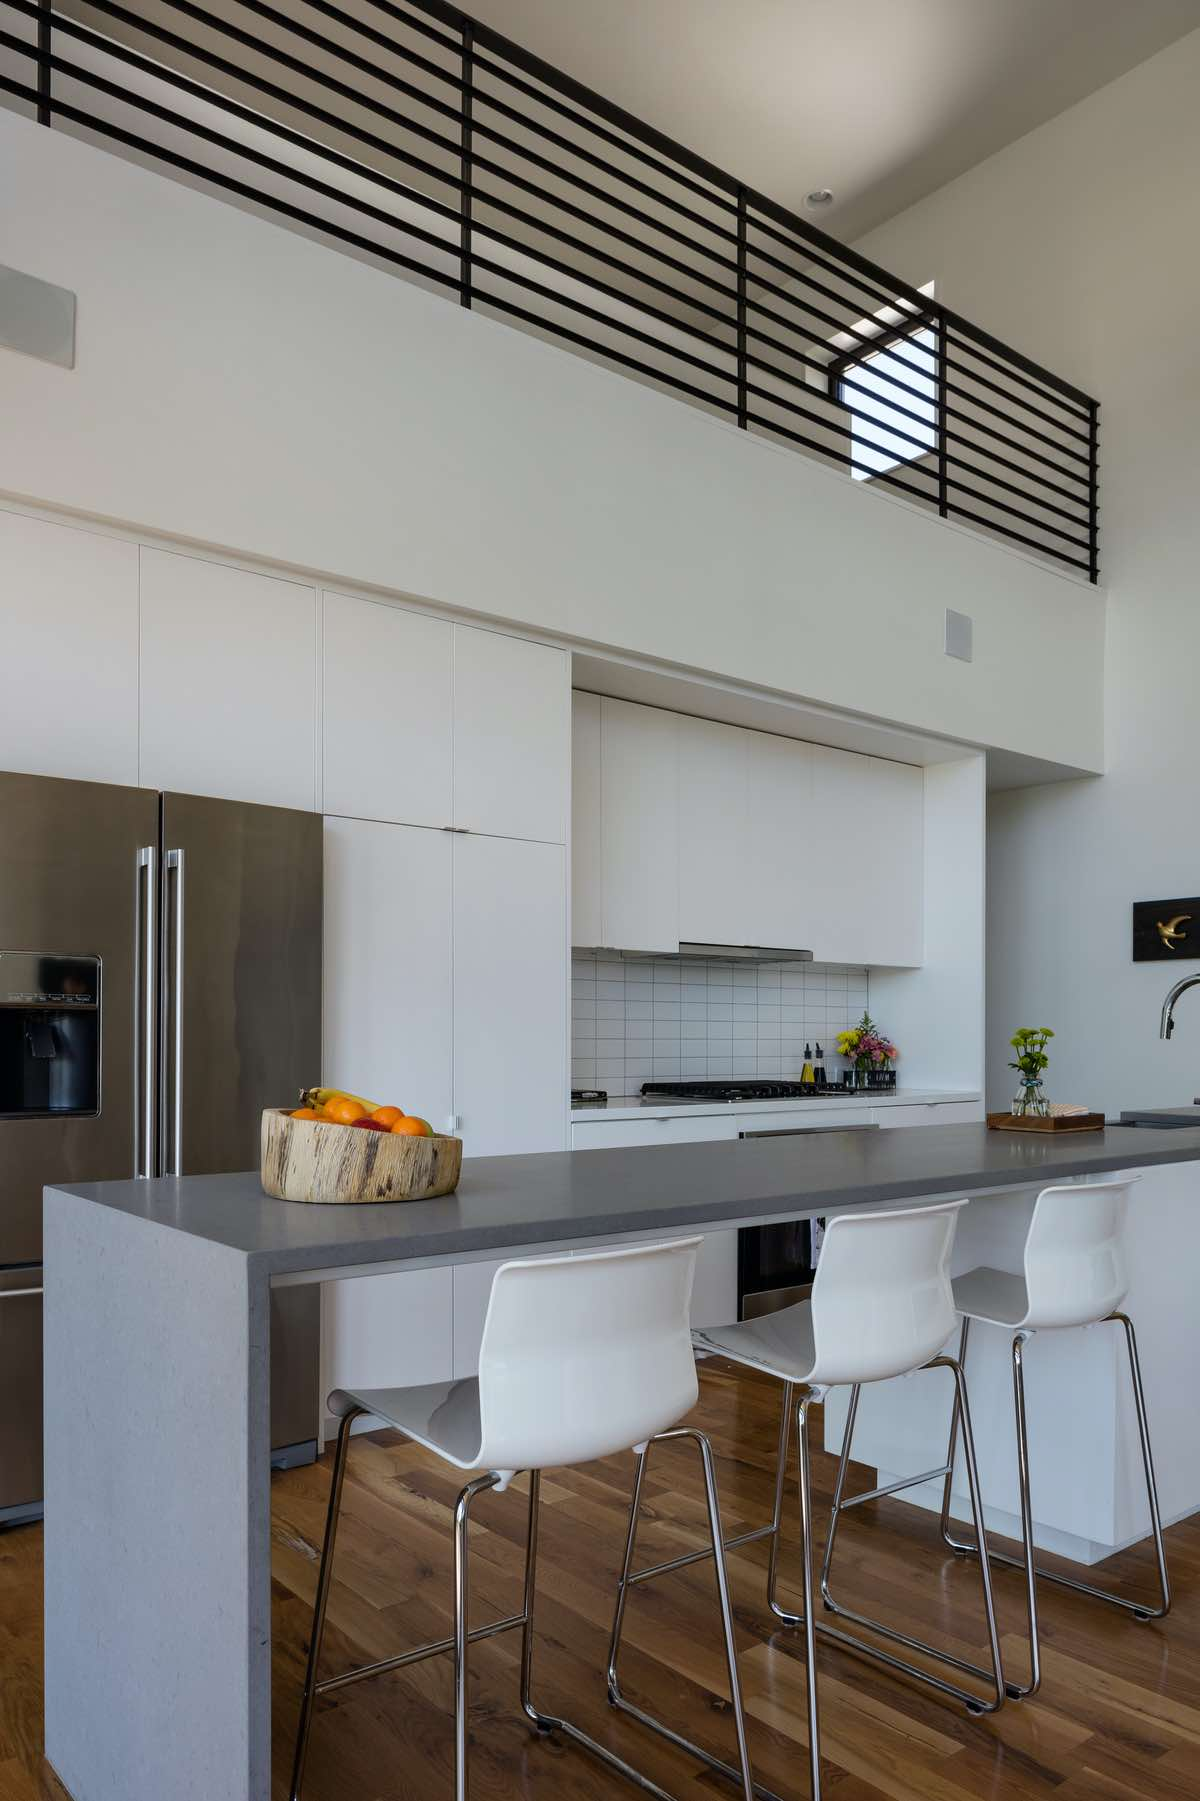 modern white bar stools in the kitchen area